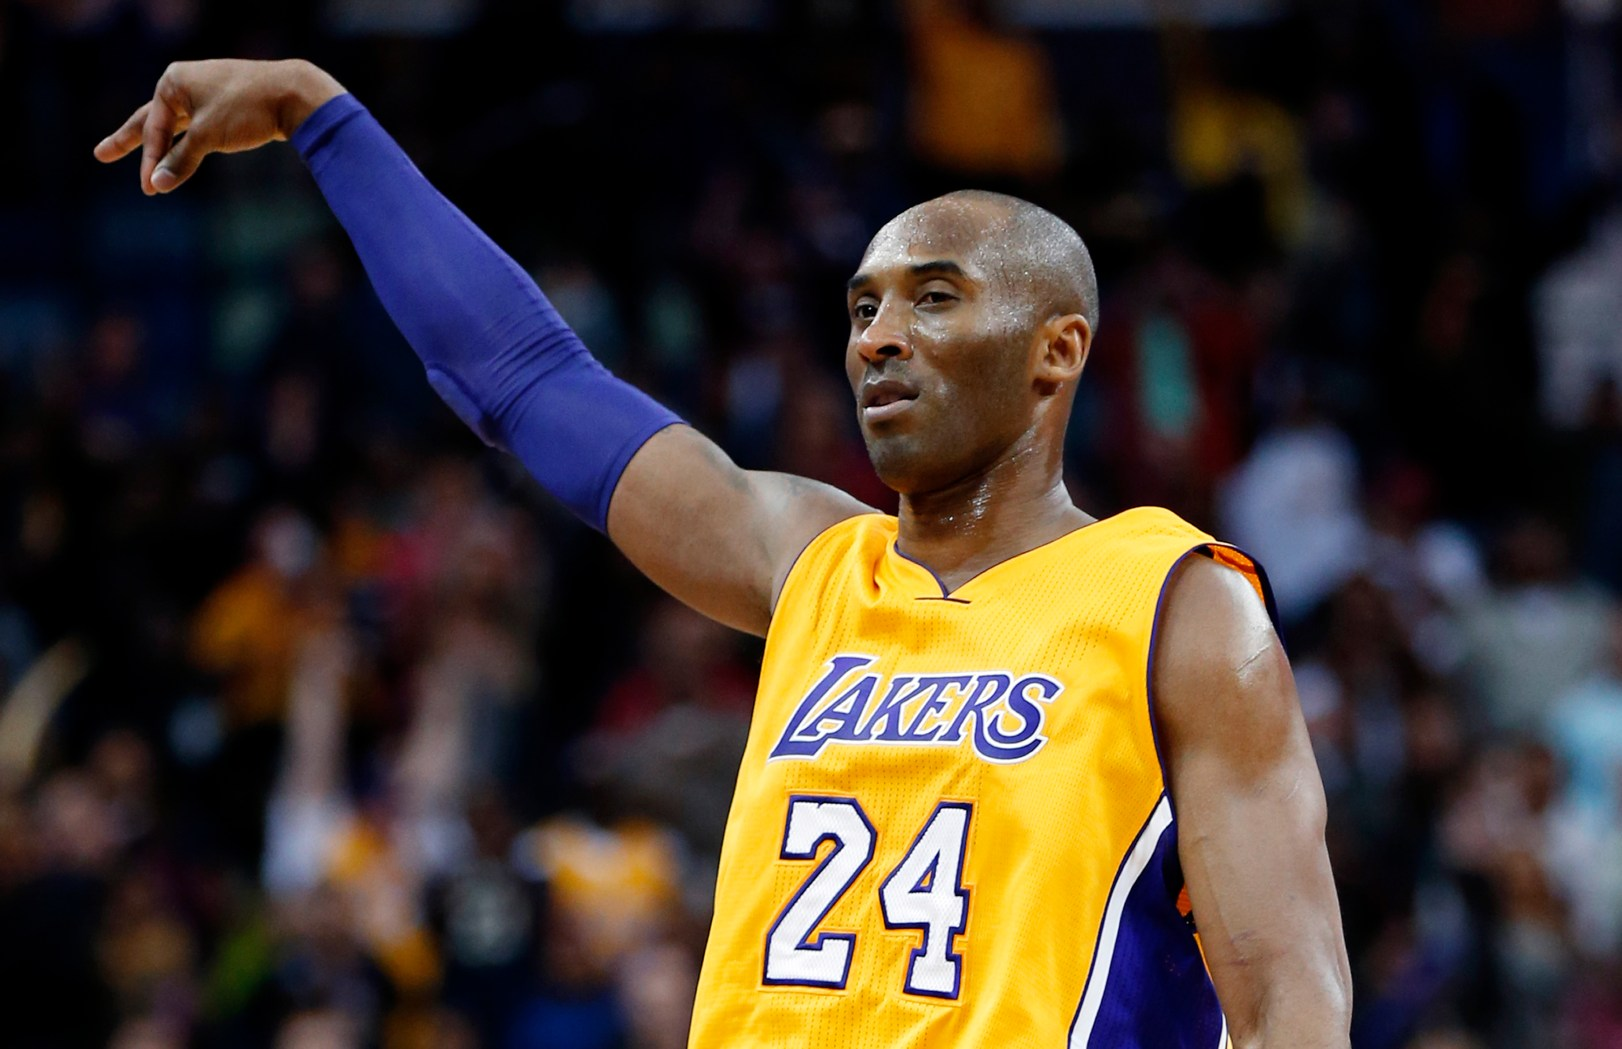 21a179015db LOS ANGELES — Although Kobe Bryant has been asked many times, he still  isn't sure who would win a mystical game of one-on-one between the young  Kobe in his ...